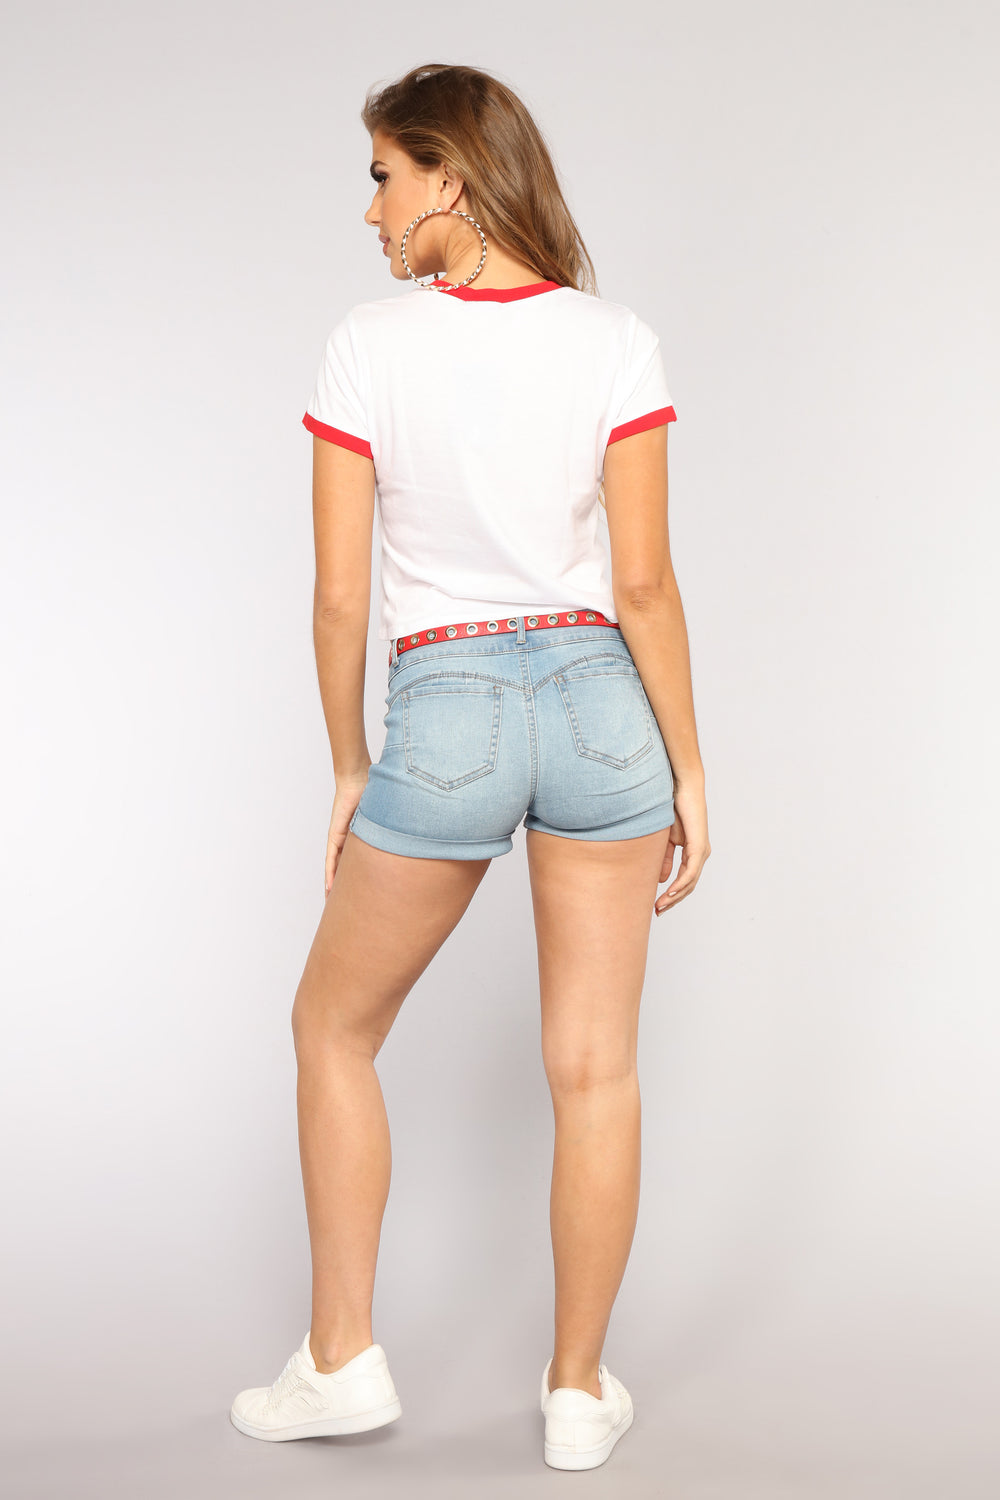 Jessica Booty Lifting Shorts - Light Blue Wash